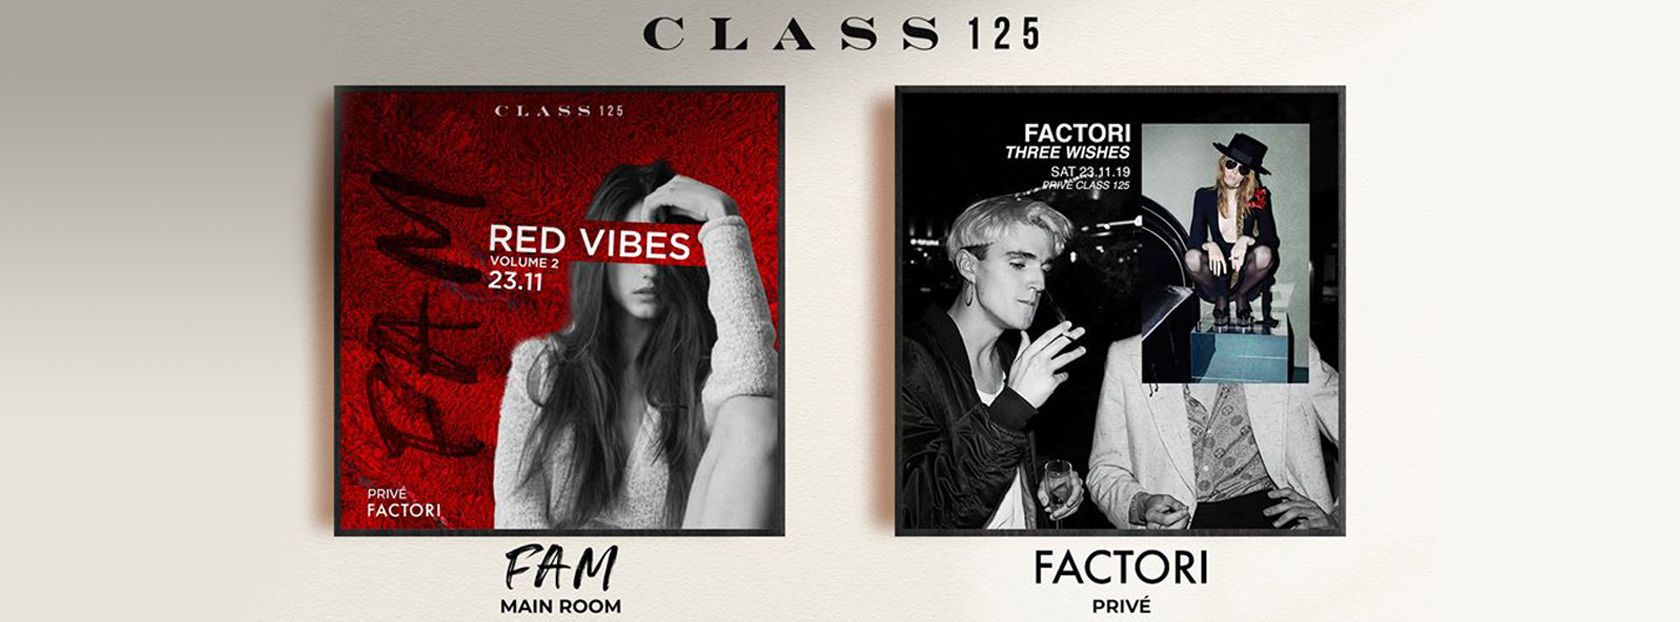 Fam - Red Vibes | Factori Prive